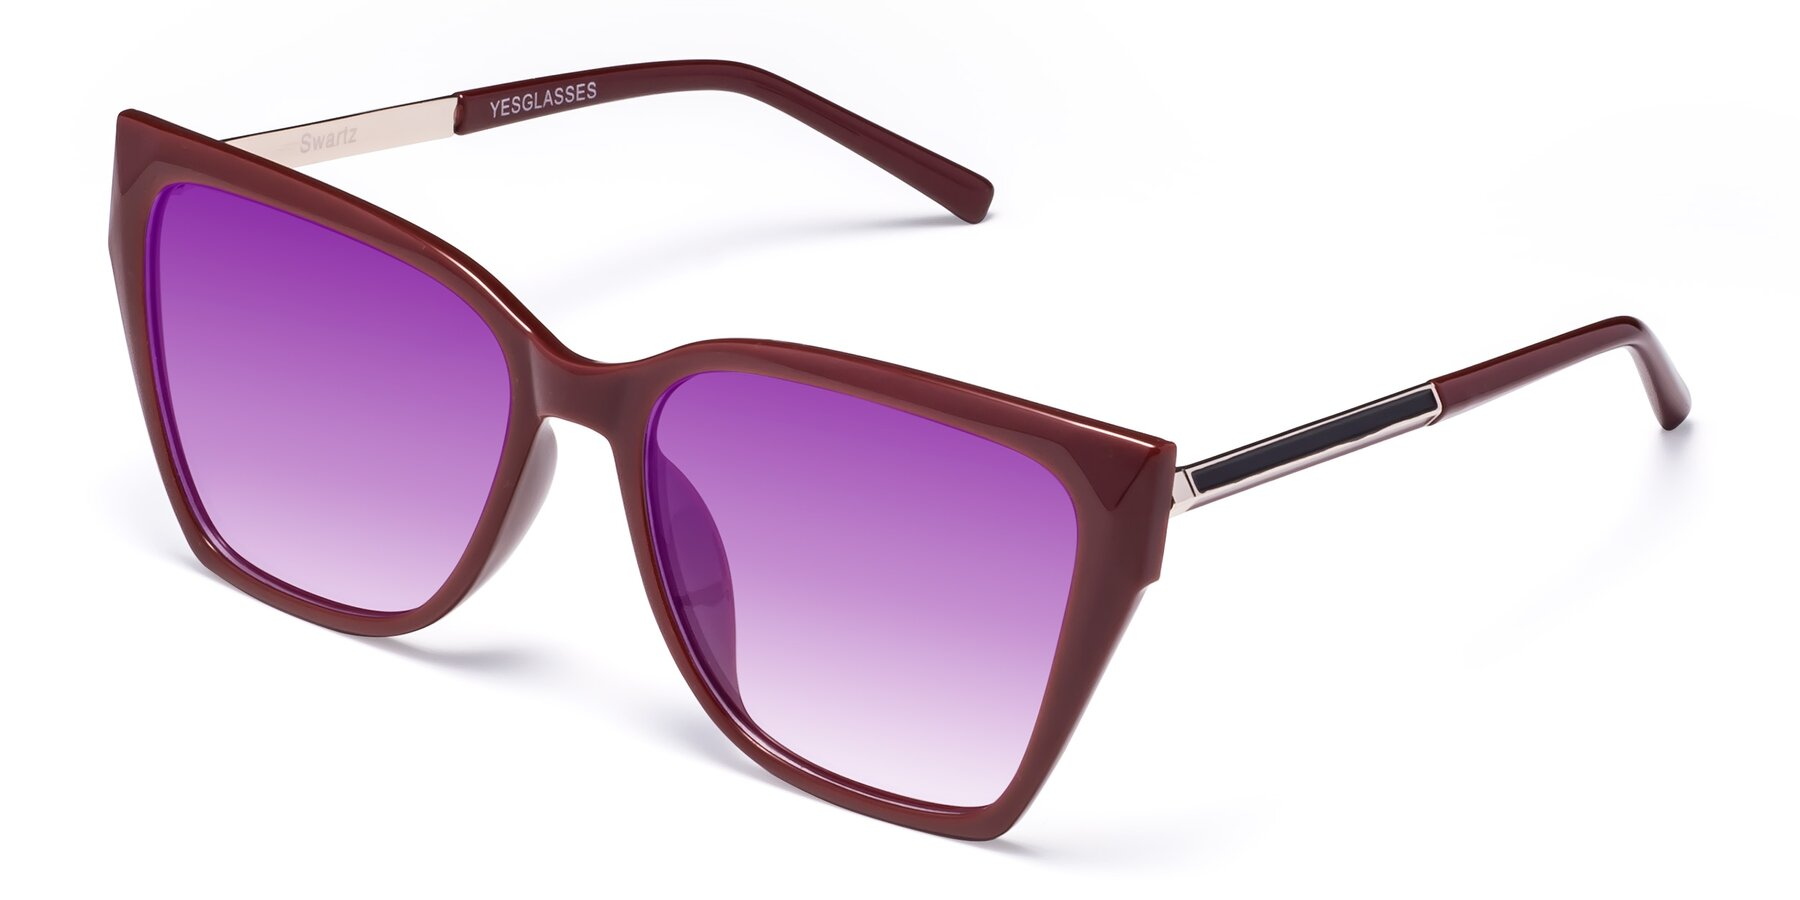 Angle of Swartz in Wine with Purple Gradient Lenses